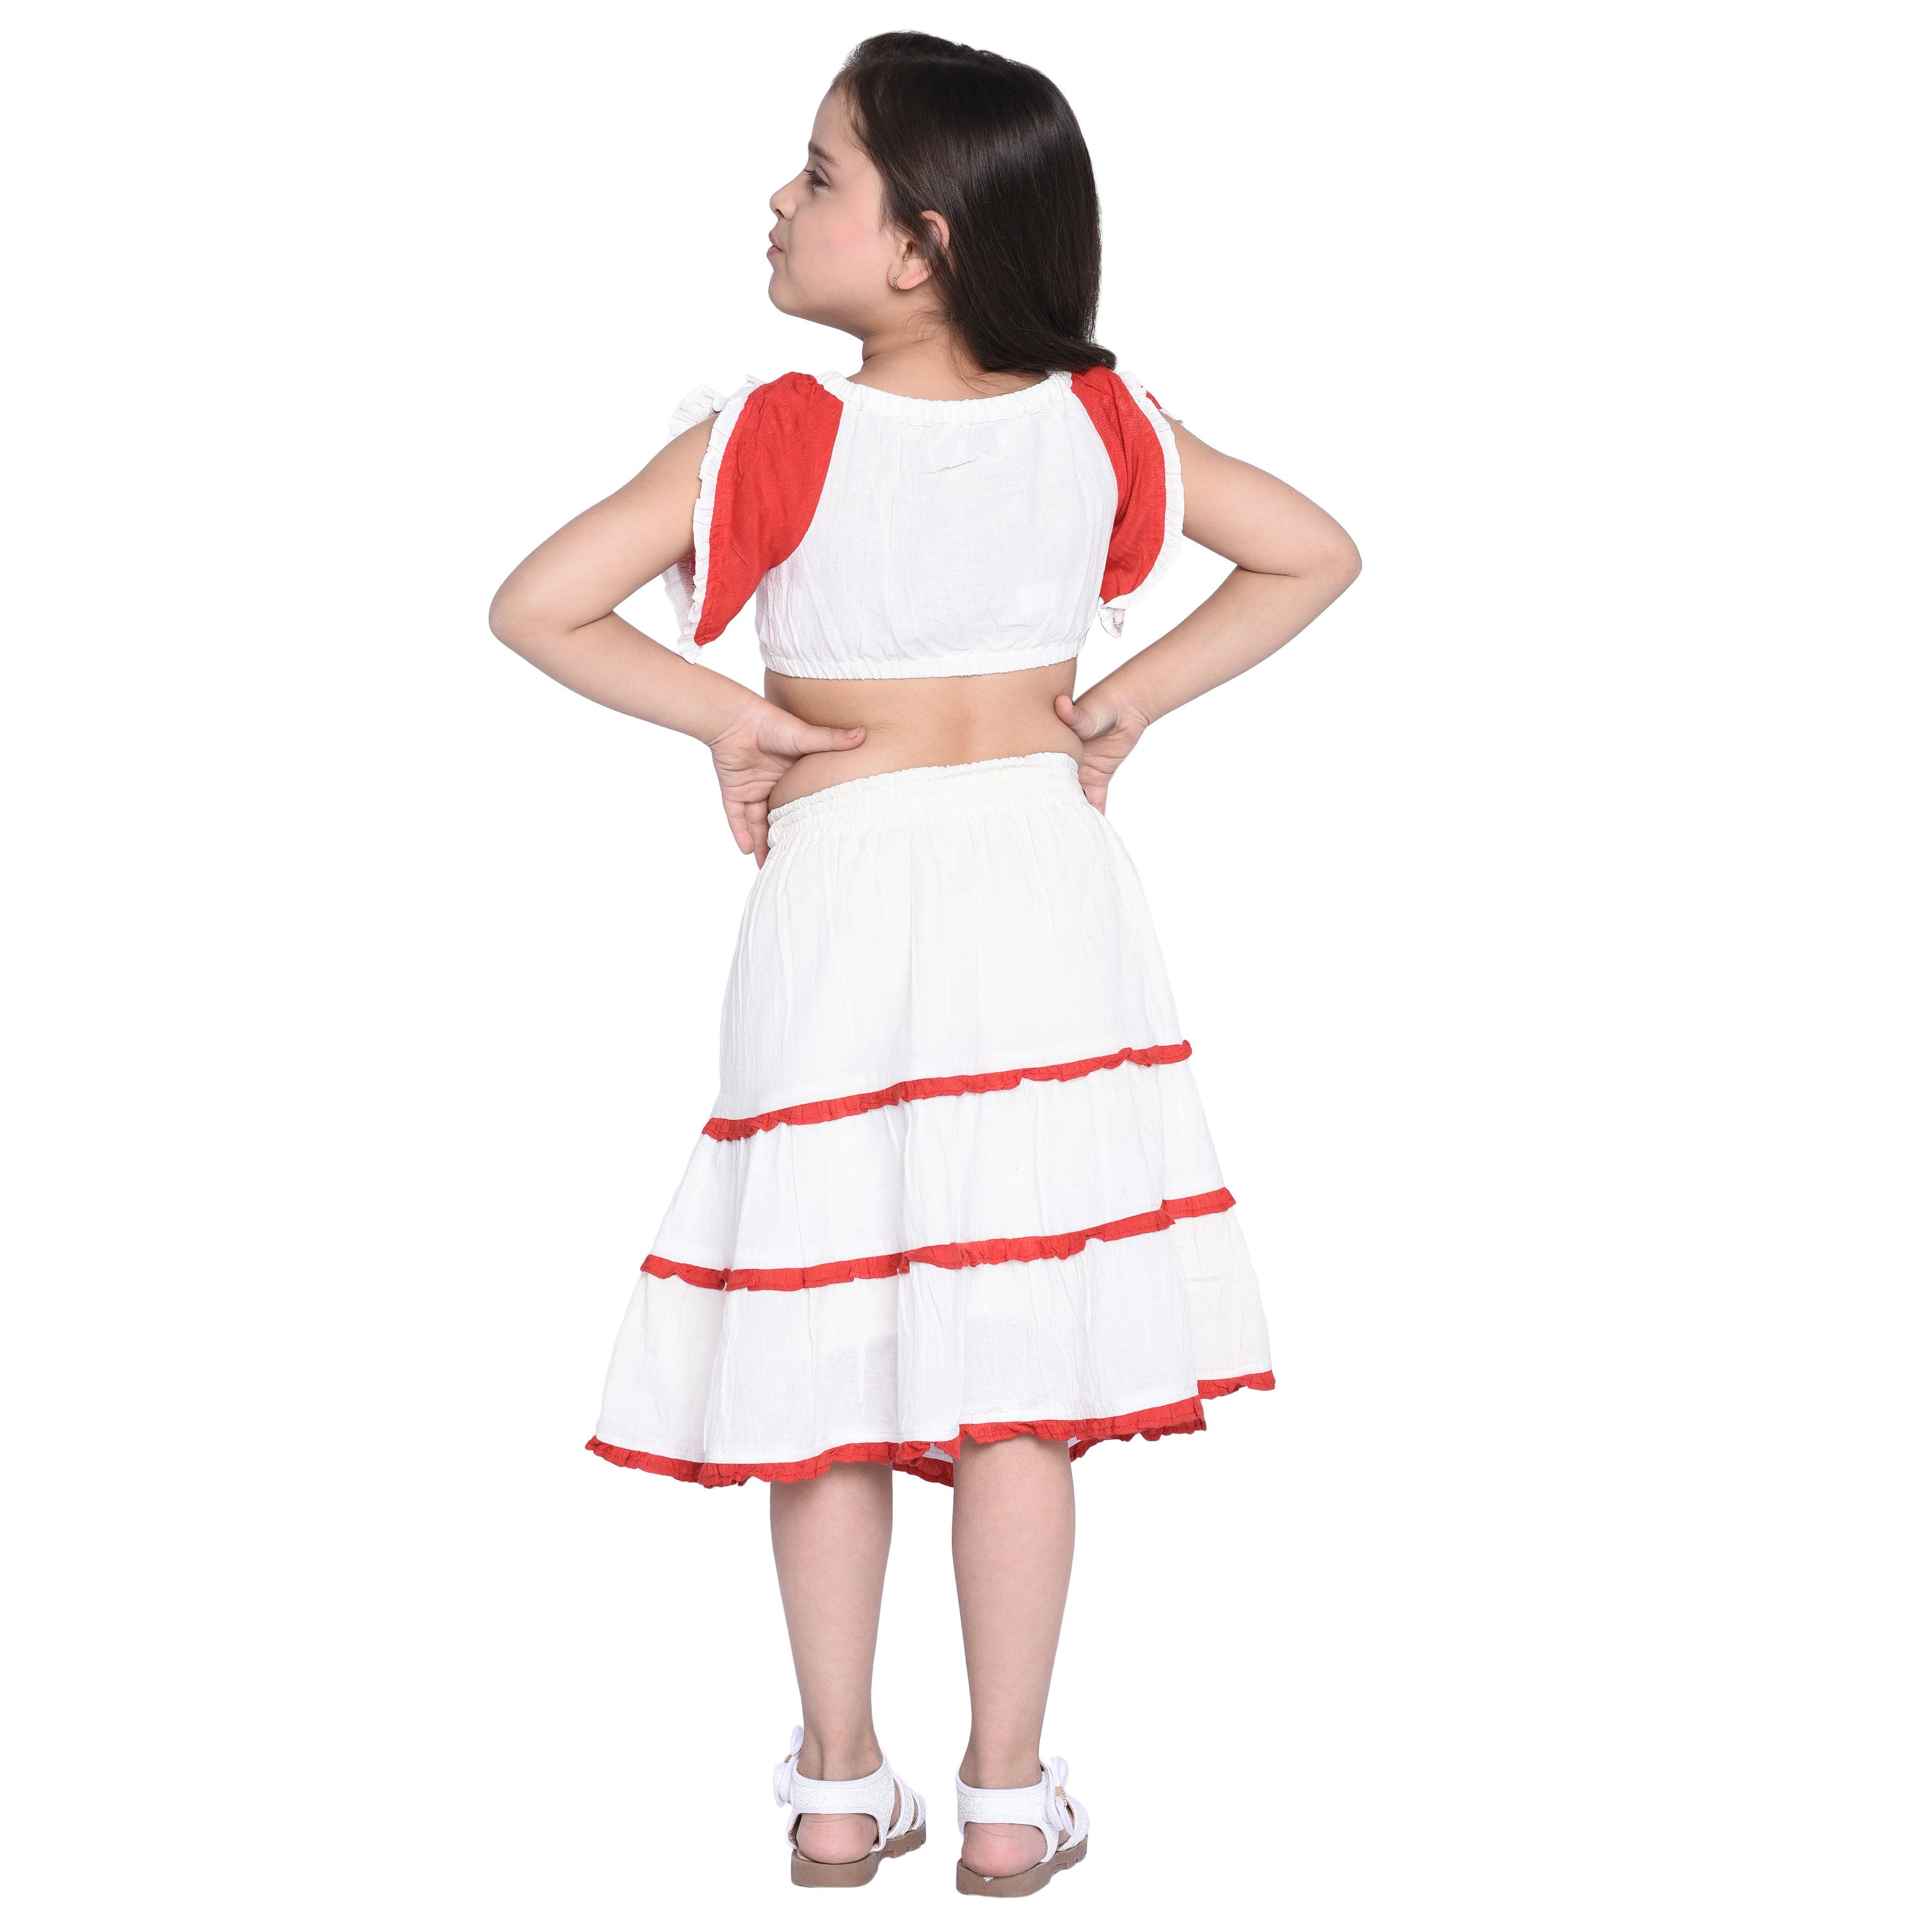 Leonor Crop top & Skirts Set for Girls